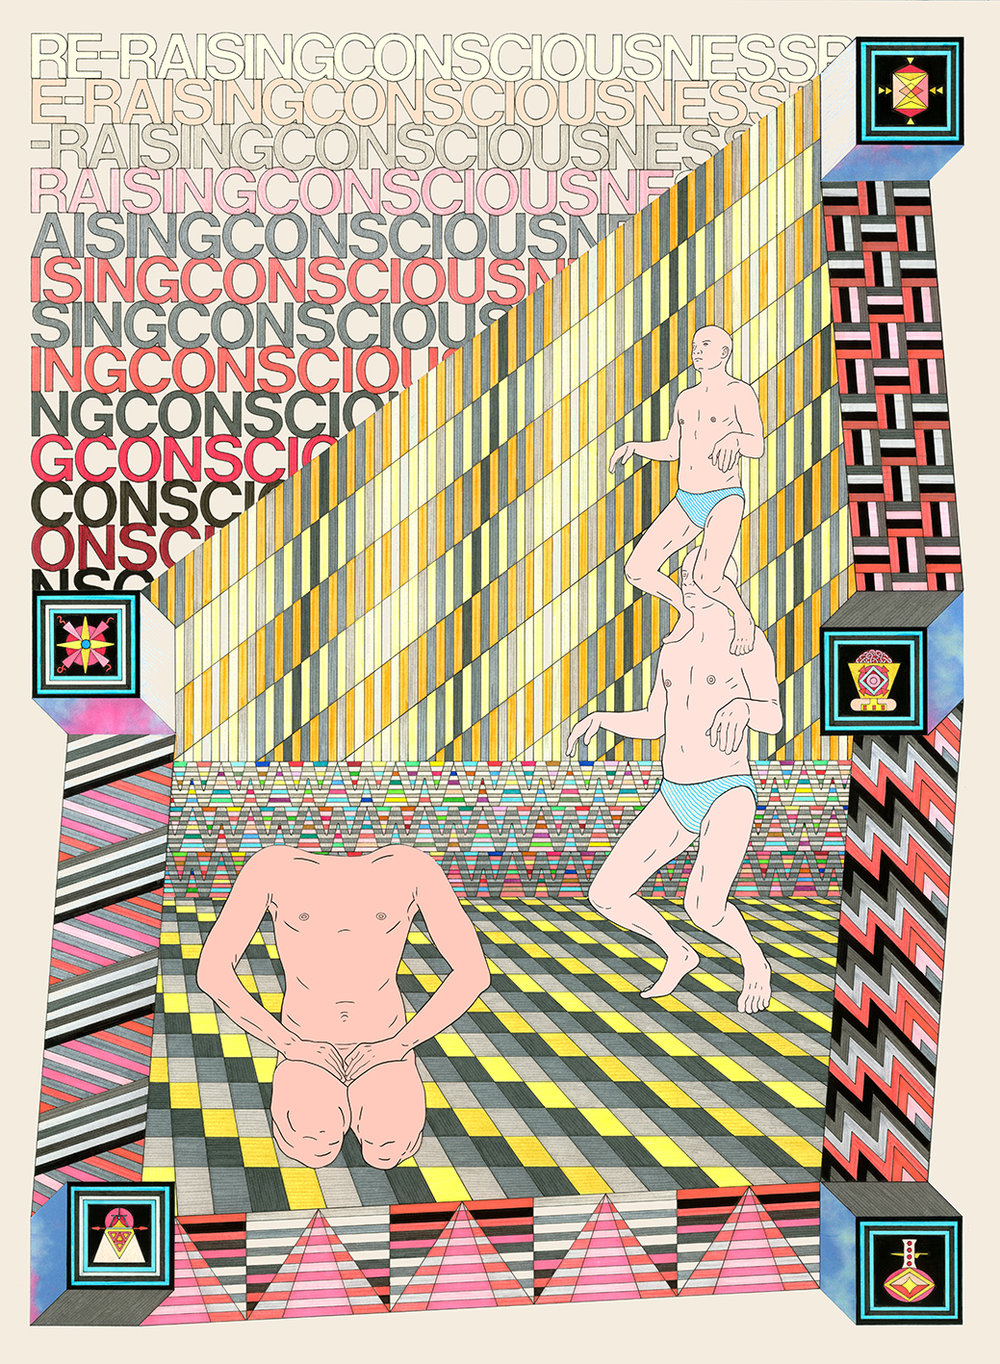 Re-Raising Consciousness, 2014